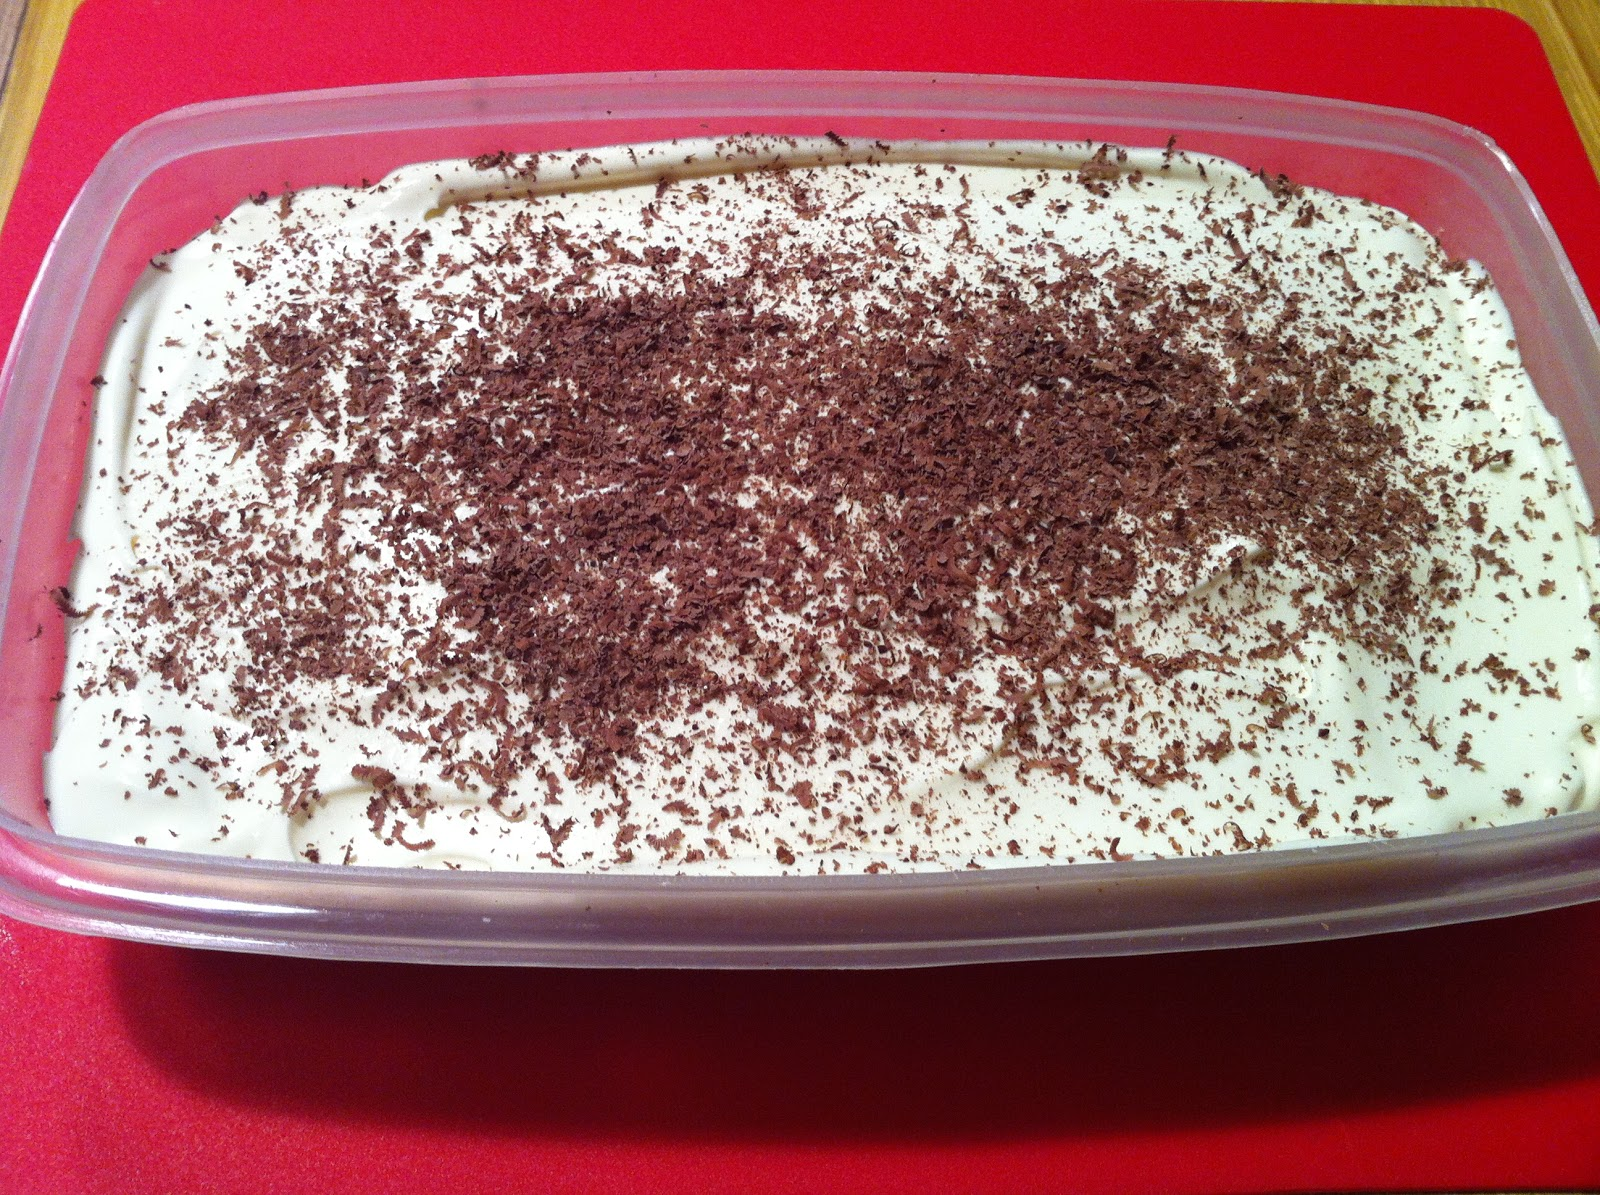 Cool Whip Pudding With Chocolate Wafers Layer Cake